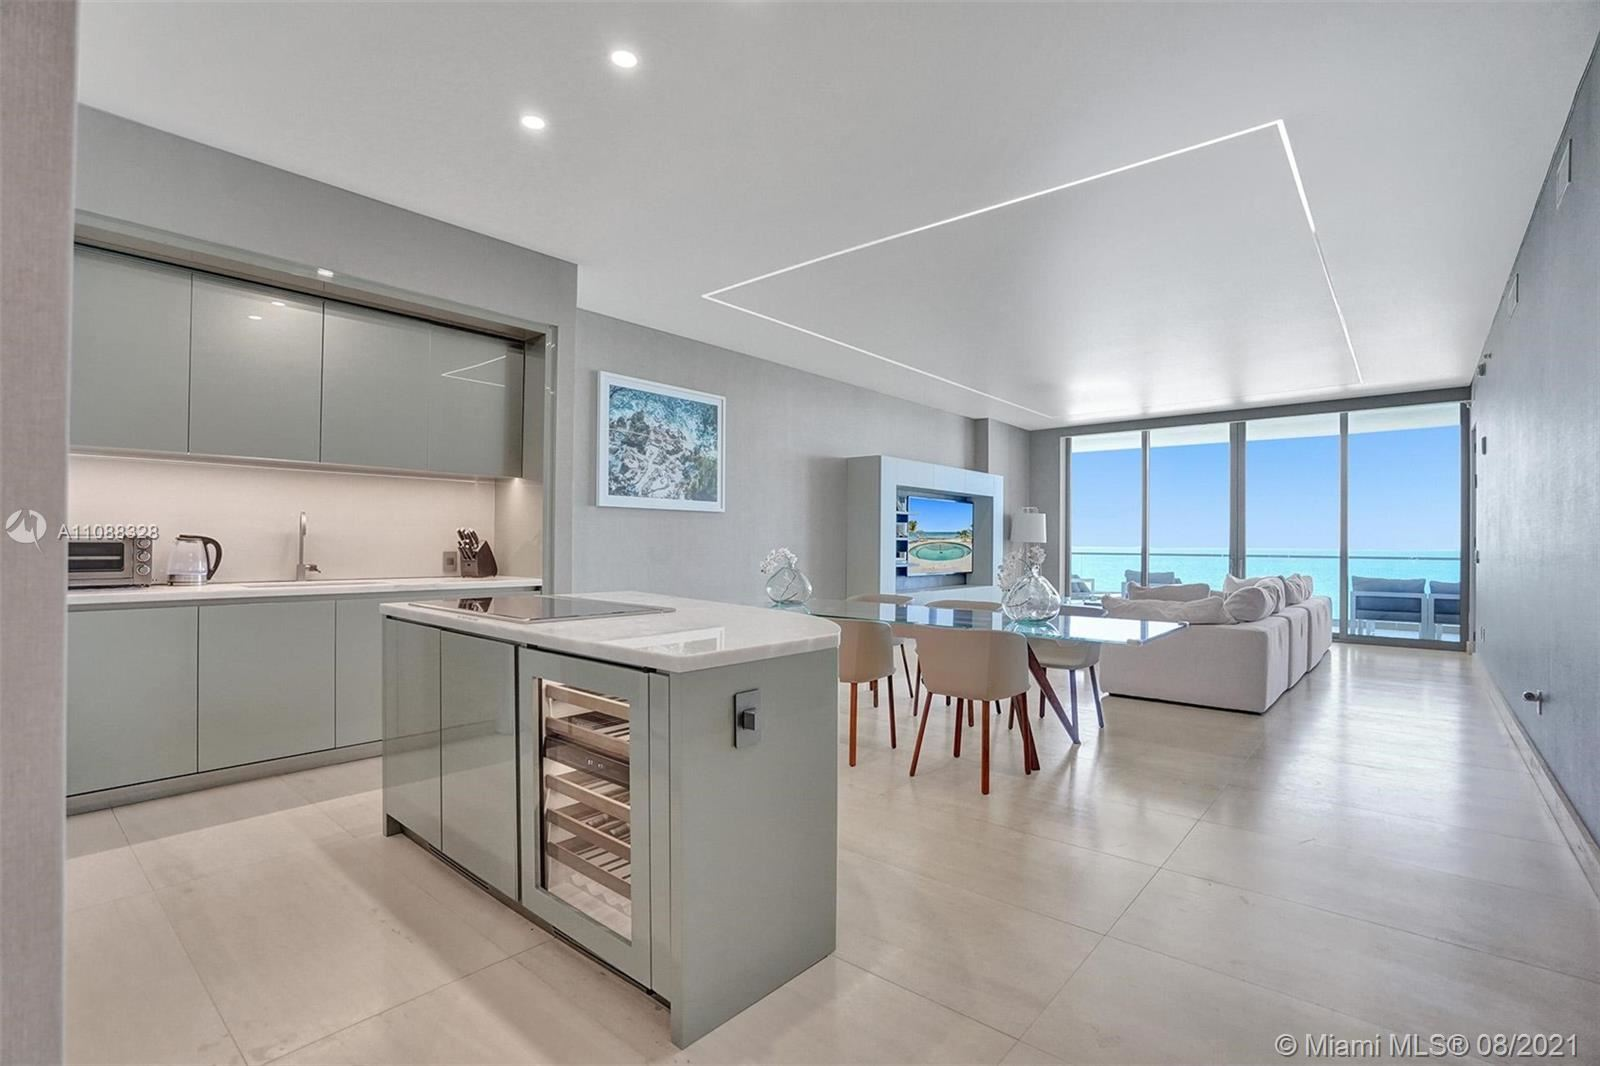 18975 Collins Ave #603, Sunny Isles, FL 33160 - #: A11088328